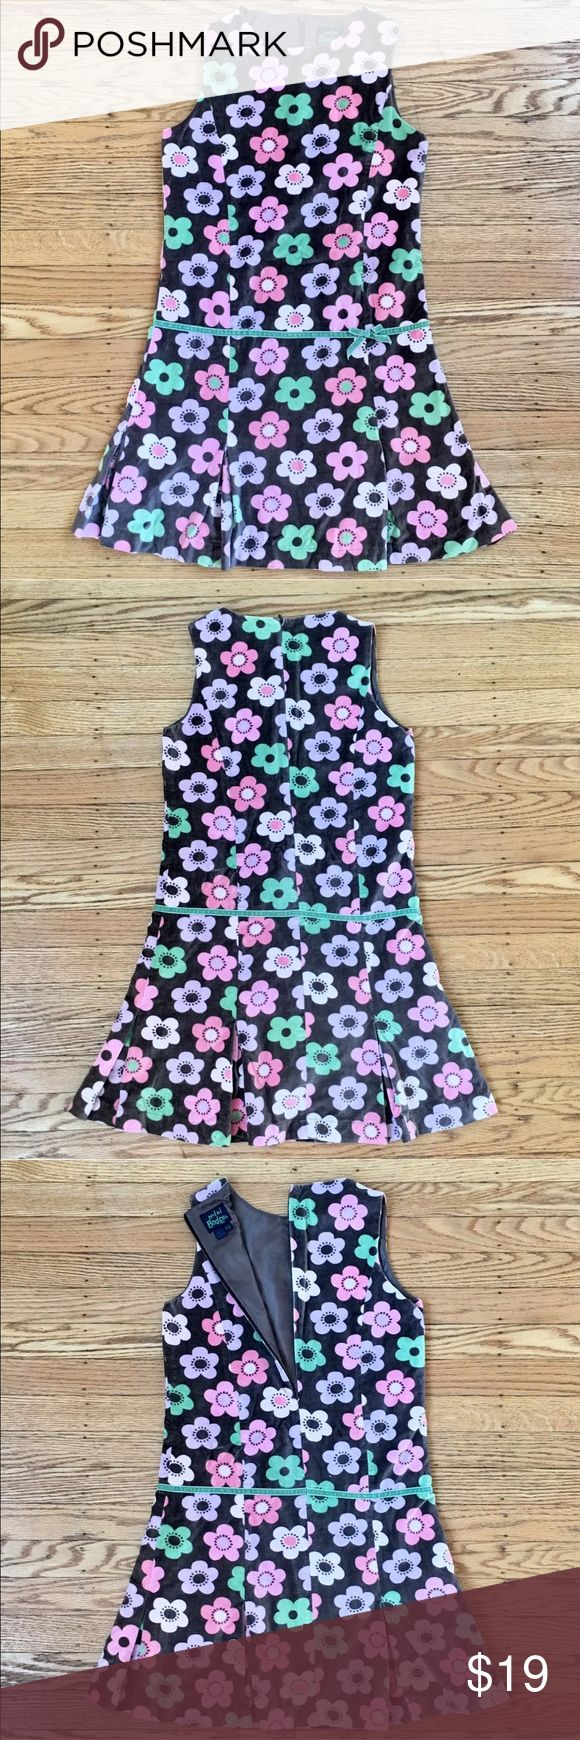 Mini Boden Velvet Party Dress 11/12 Yr Mini Boden  Girls 11/12 yr  Sleeveless  Hidden Back Zip  Pull Over Style  Velvet 100% Cotton Taupe Shell with MultiColor Flower Print Dress.  Cute Bow Accent.  Lined  Pleated Skirt.  Thank You!  PreOwned in Excellent Condition  Perfect Paired with Cardigan and Tights ❤️ Mini Boden Dresses Formal